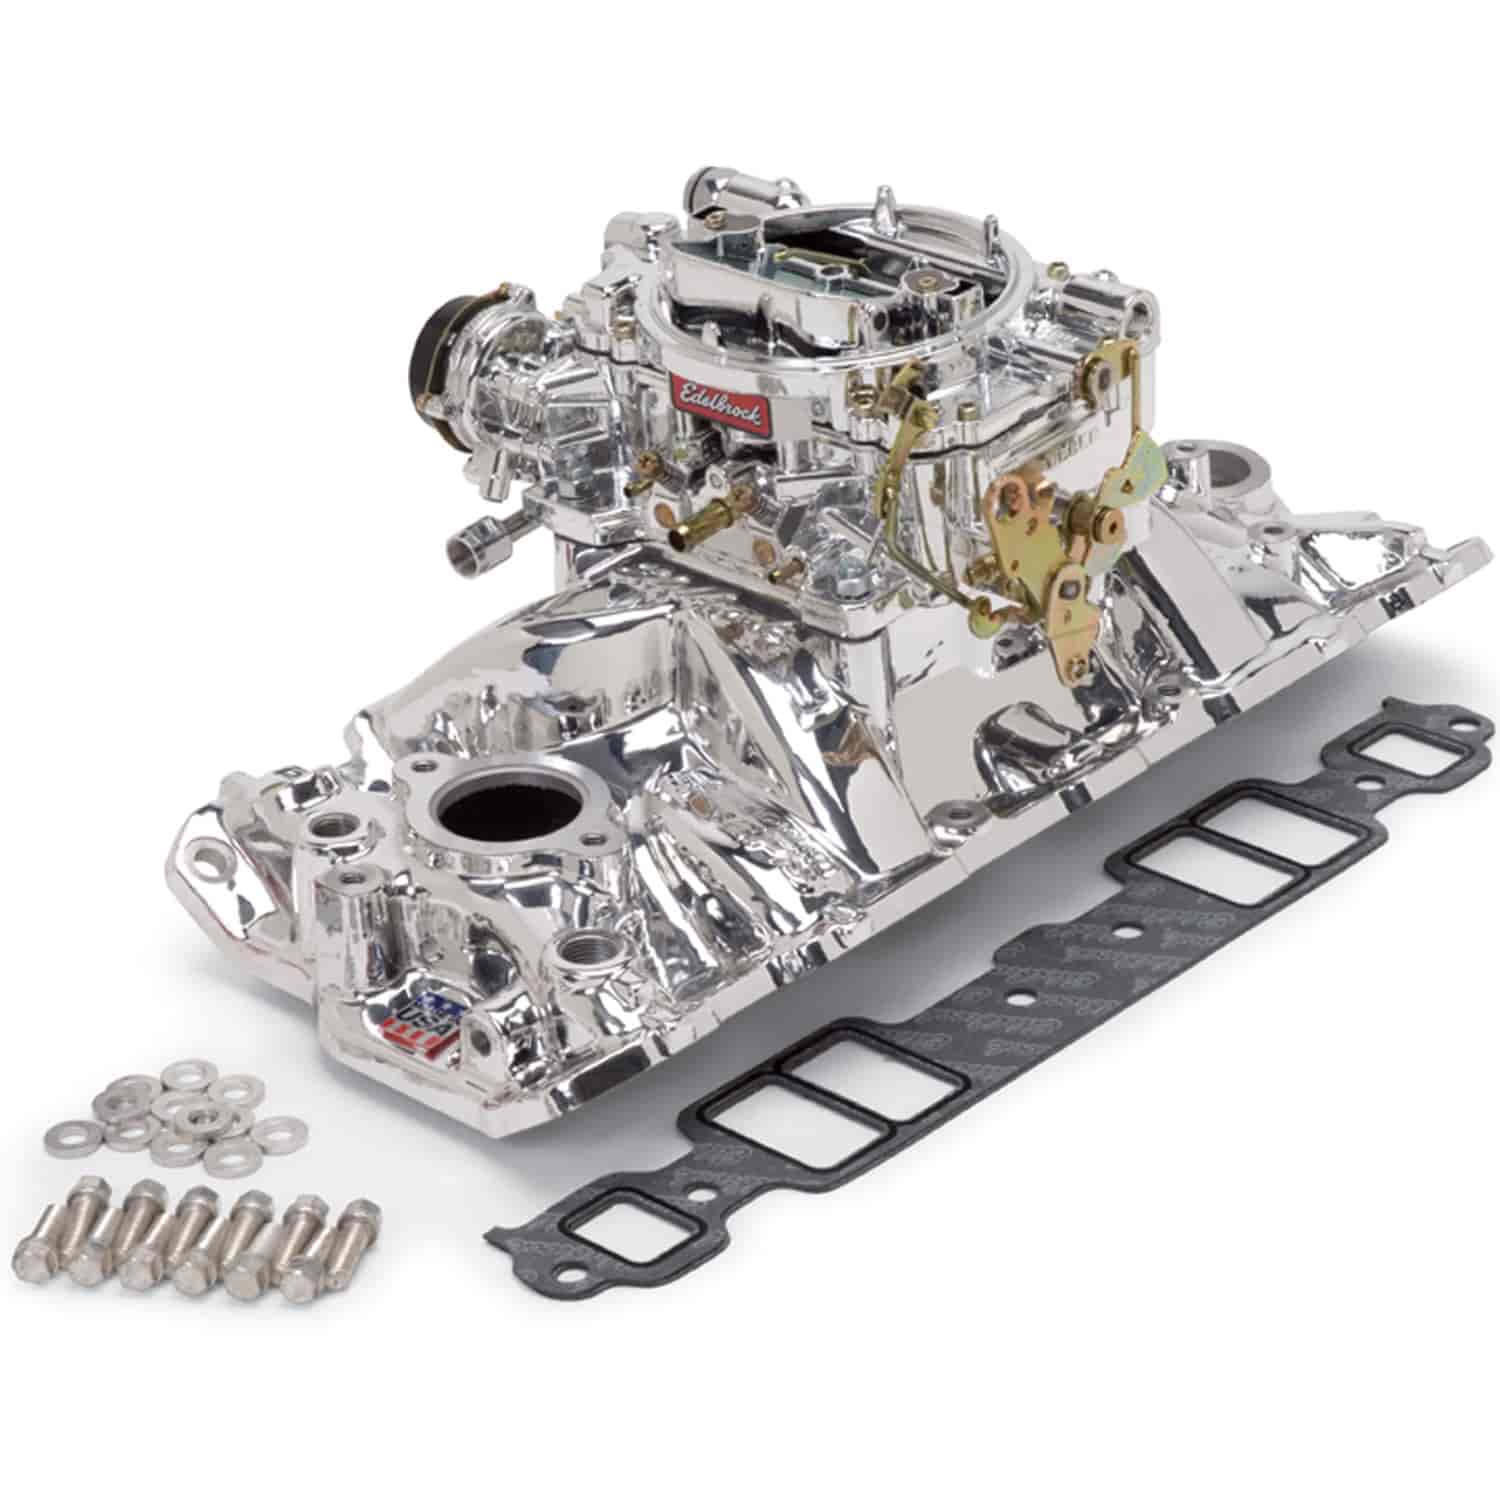 Edelbrock 20214 Single-Quad Manifold And Carb Kit Small